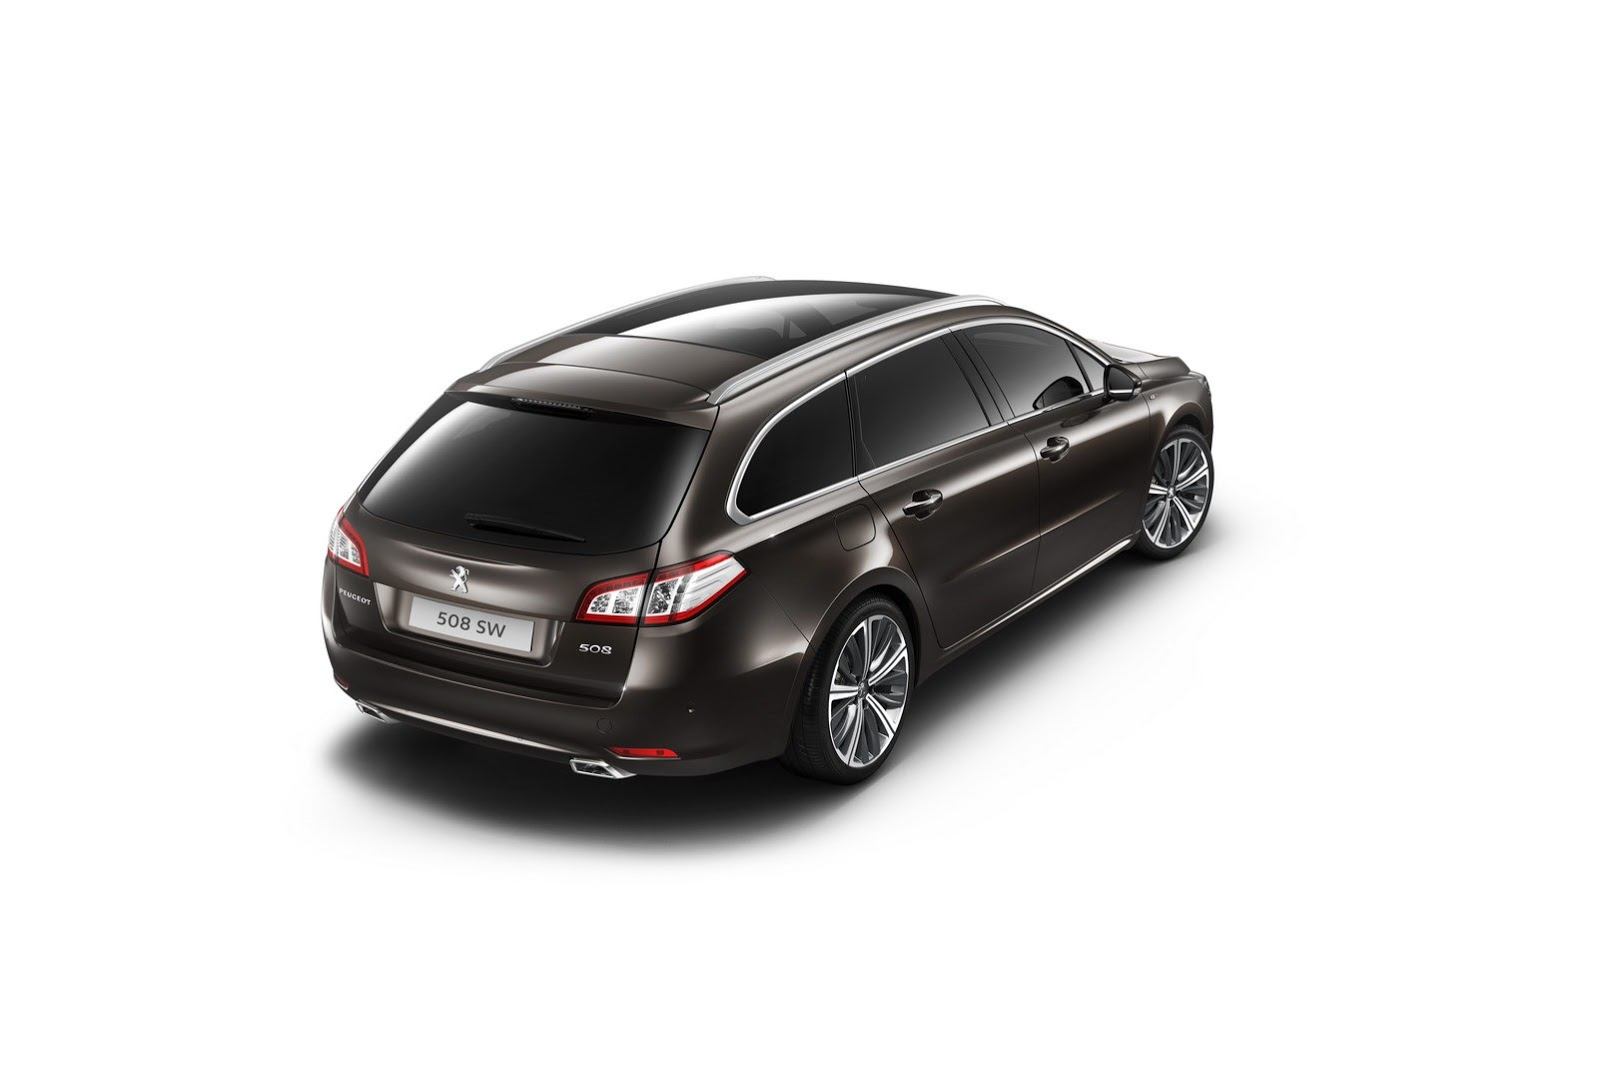 peugeot reveals 508 facelift with more powerful engines autoevolution. Black Bedroom Furniture Sets. Home Design Ideas